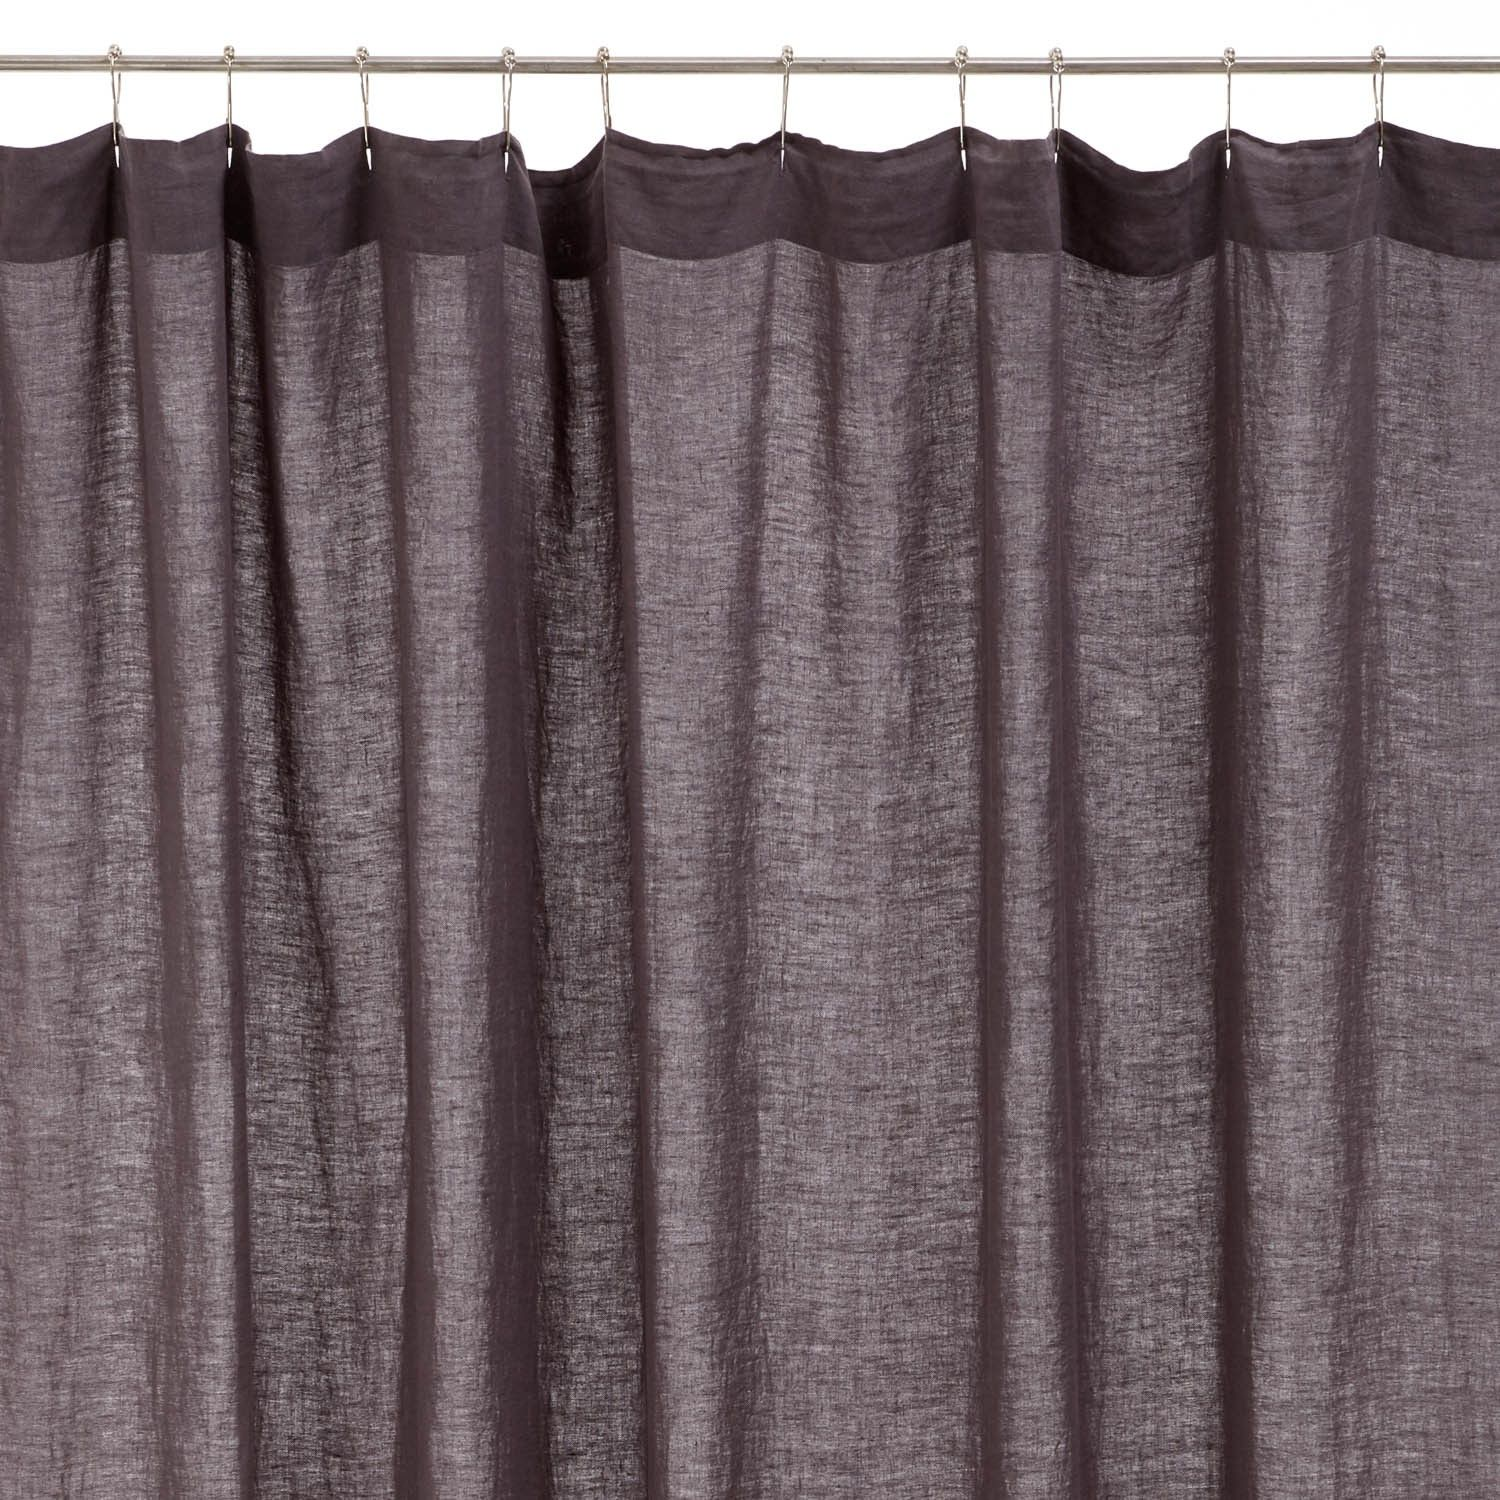 Lissoy Graphite Linen Shower Curtain Cool Shower Curtains